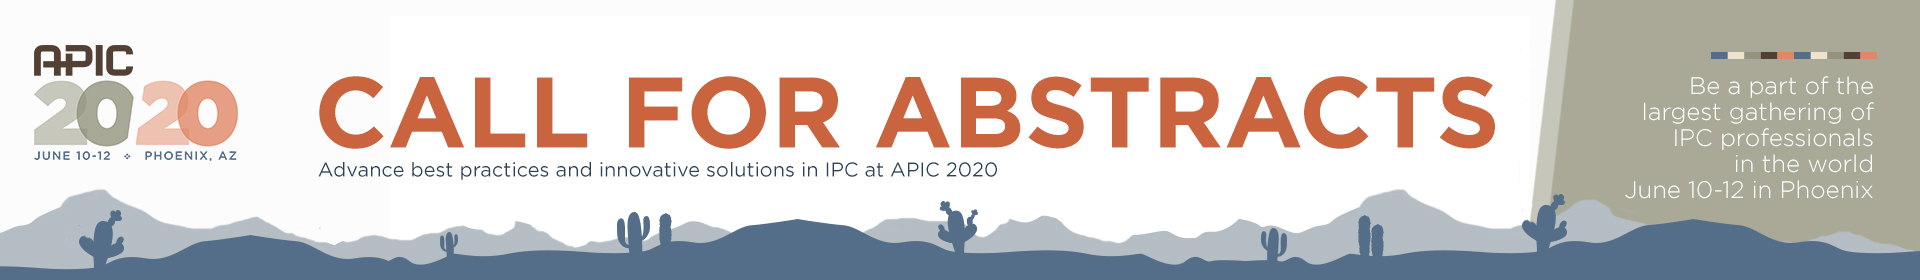 APIC 2020 Annual Conference Call for Abstracts  Event Banner